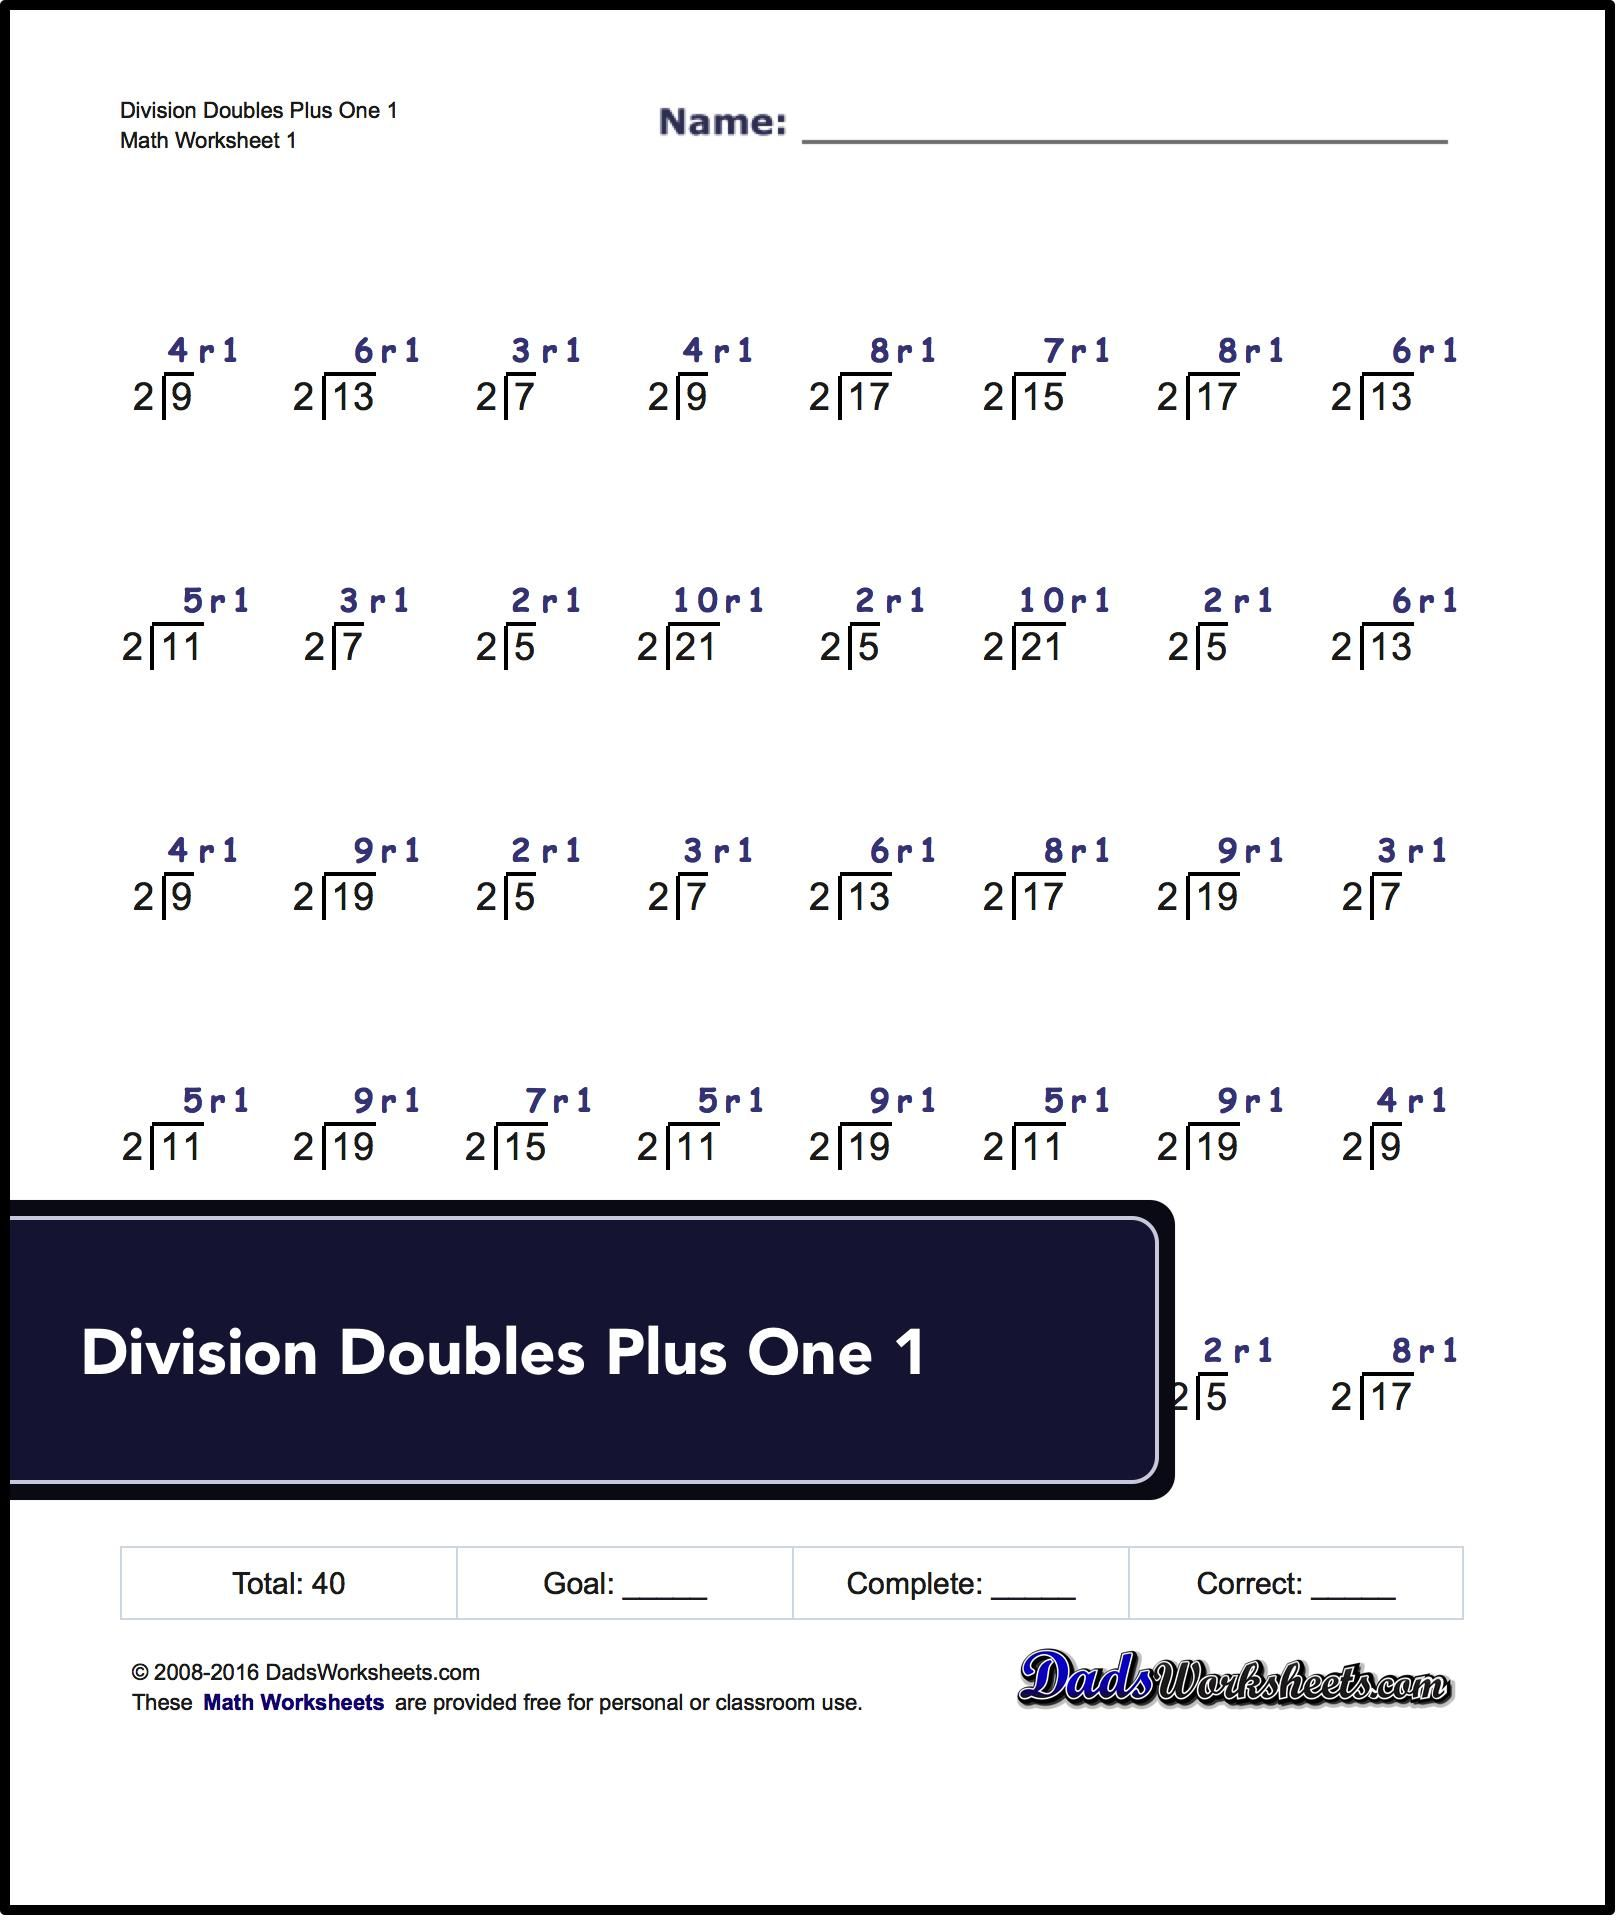 SpaceshipMath Division Worksheets a gradual approach to learning – Division Worksheets with Pictures